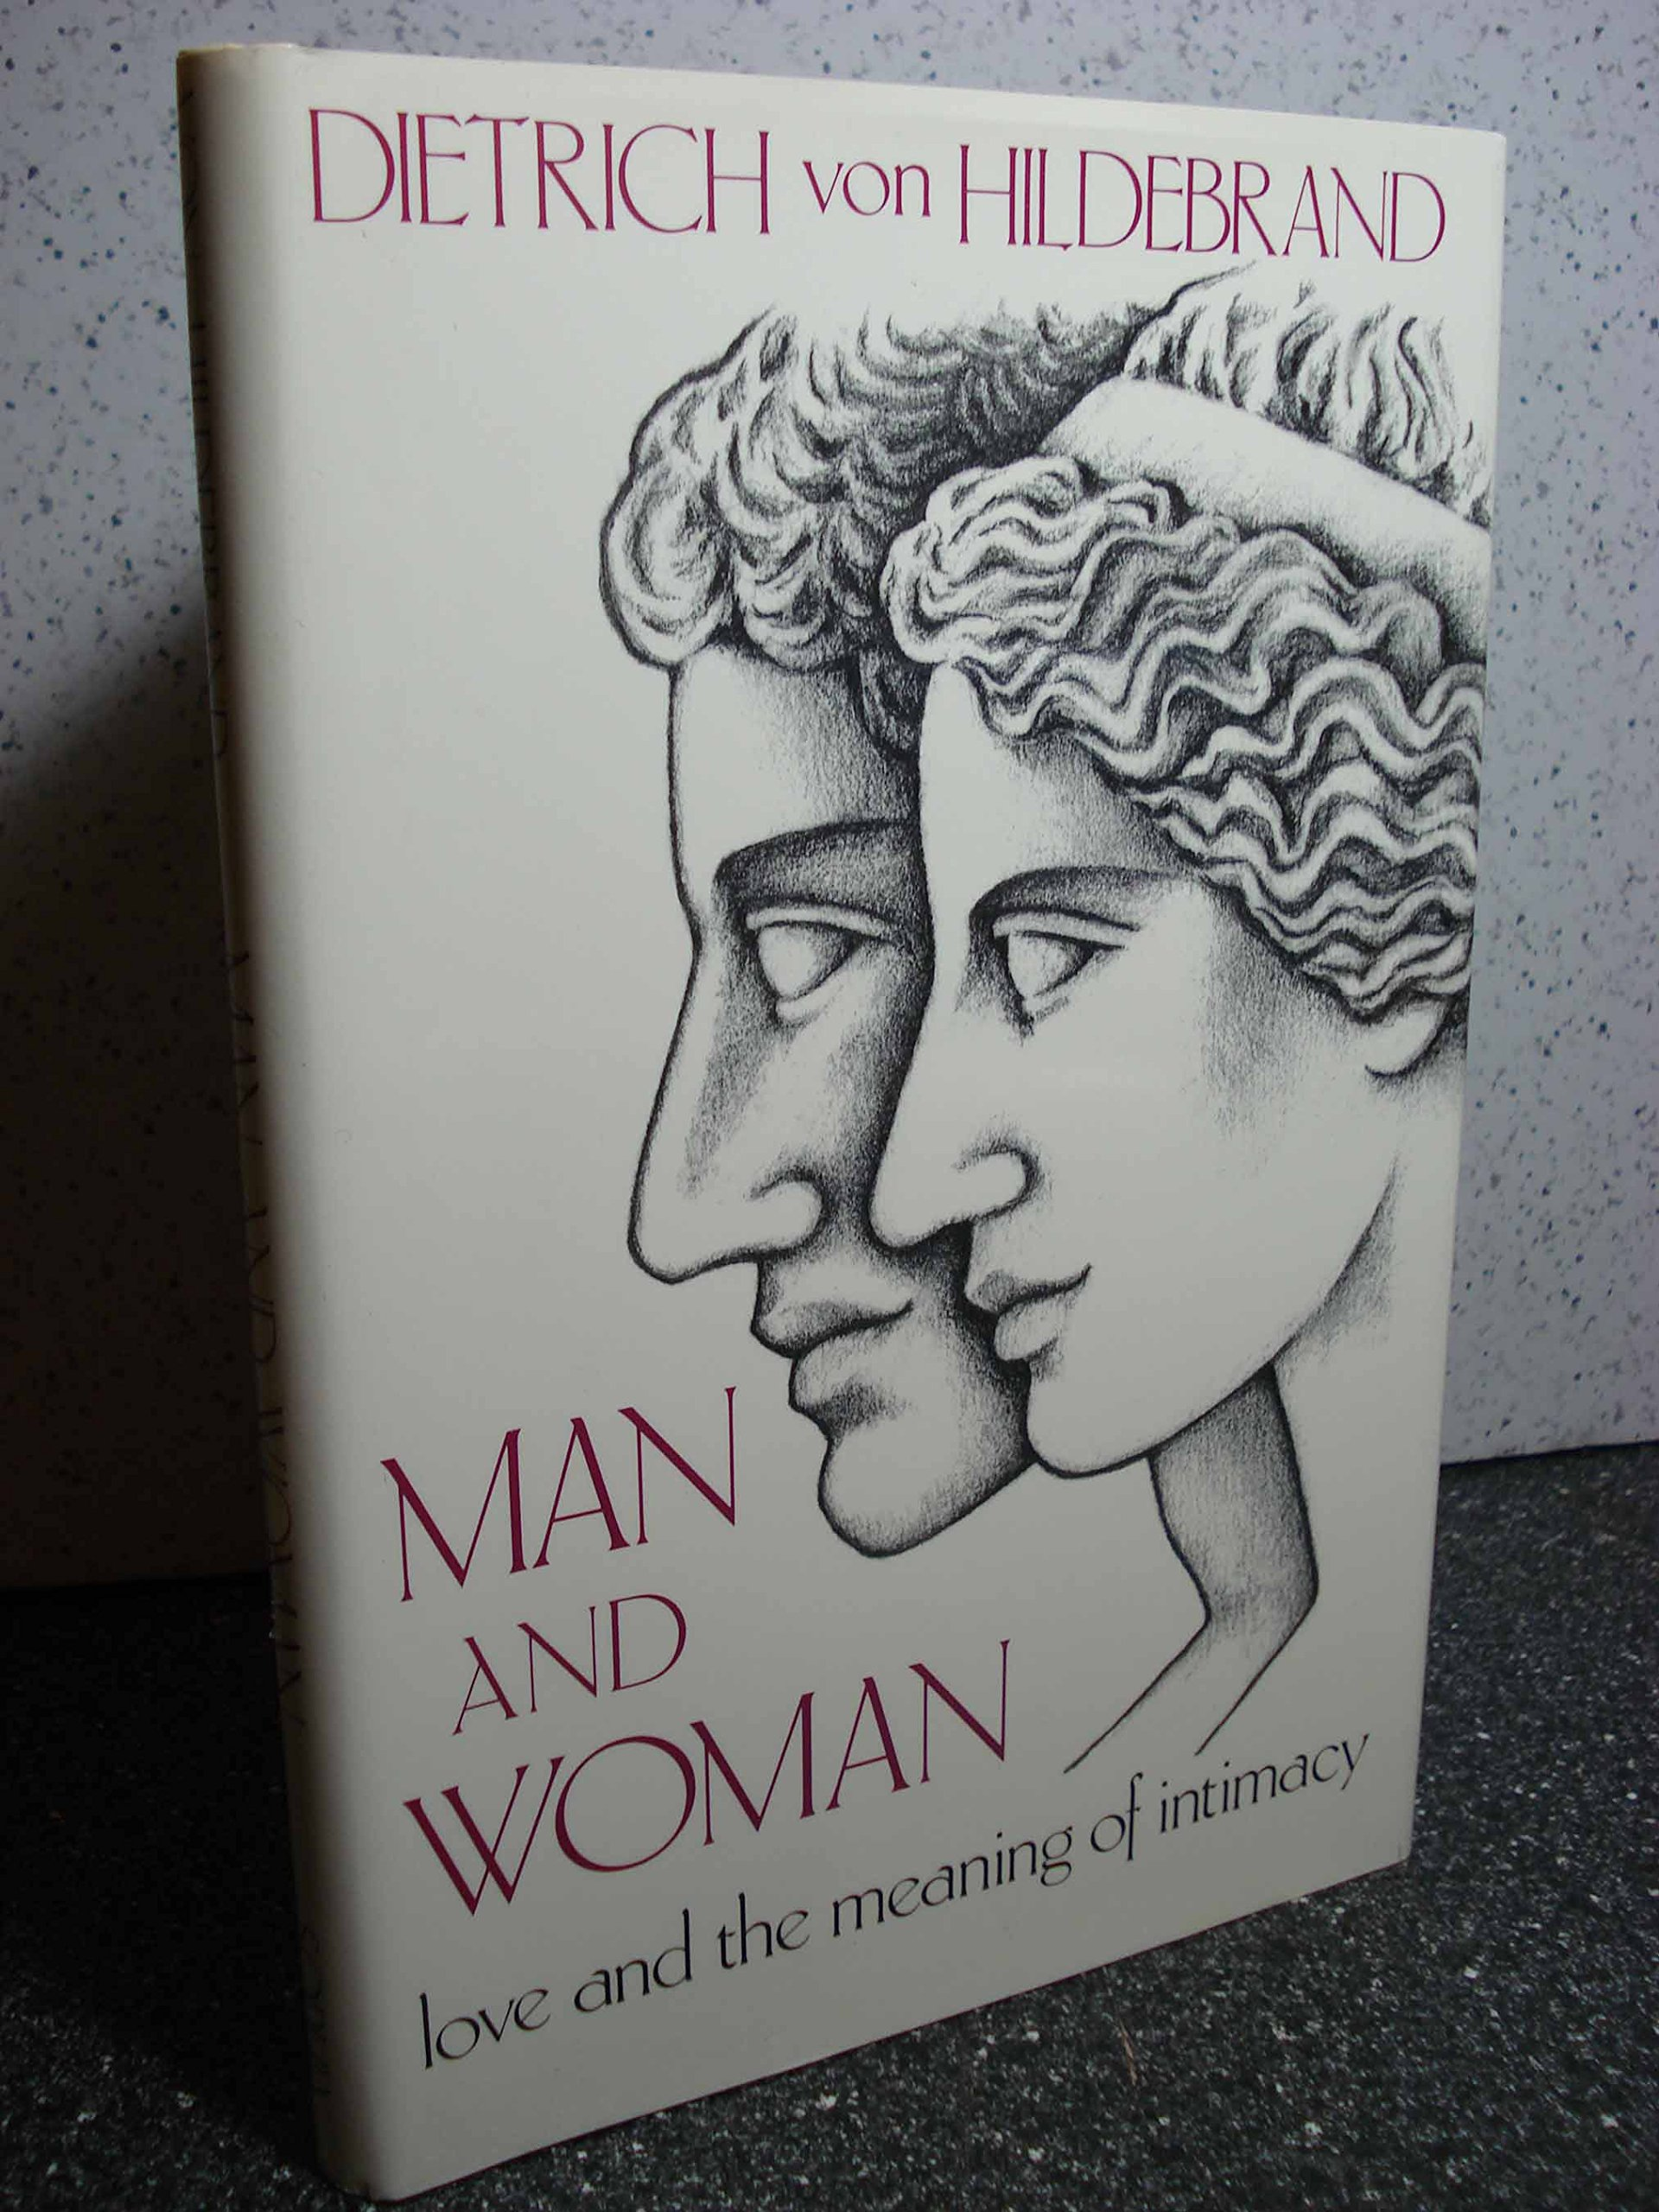 Amazon.com: Man and Woman: Love & the Meaning of Intimacy (9780918477149):  Dietrich Von Hildebrand: Books